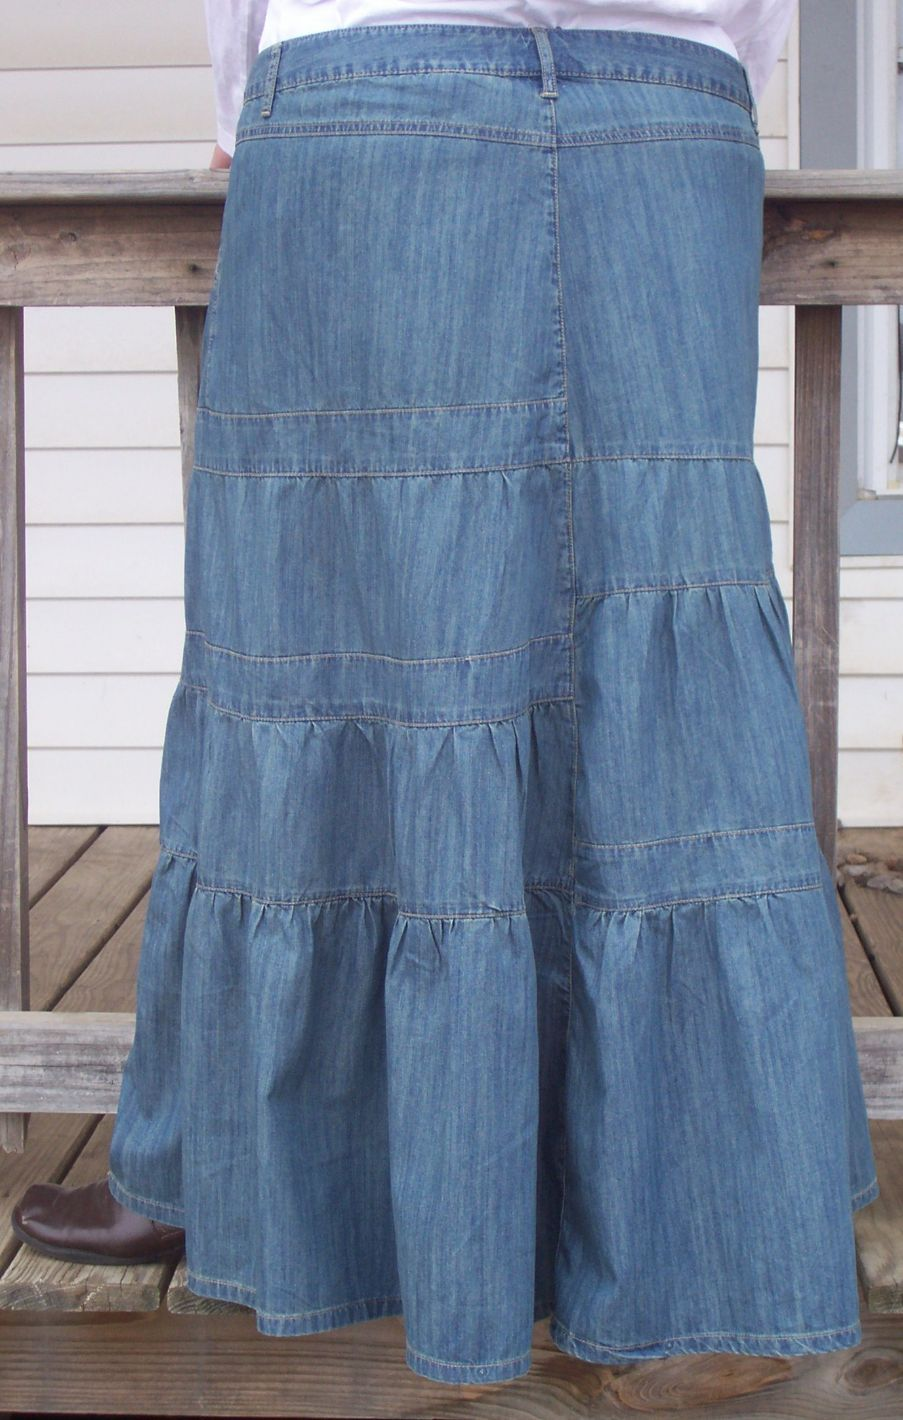 Long Denim Skirts | ... plus size denim skirt for women wanting ...